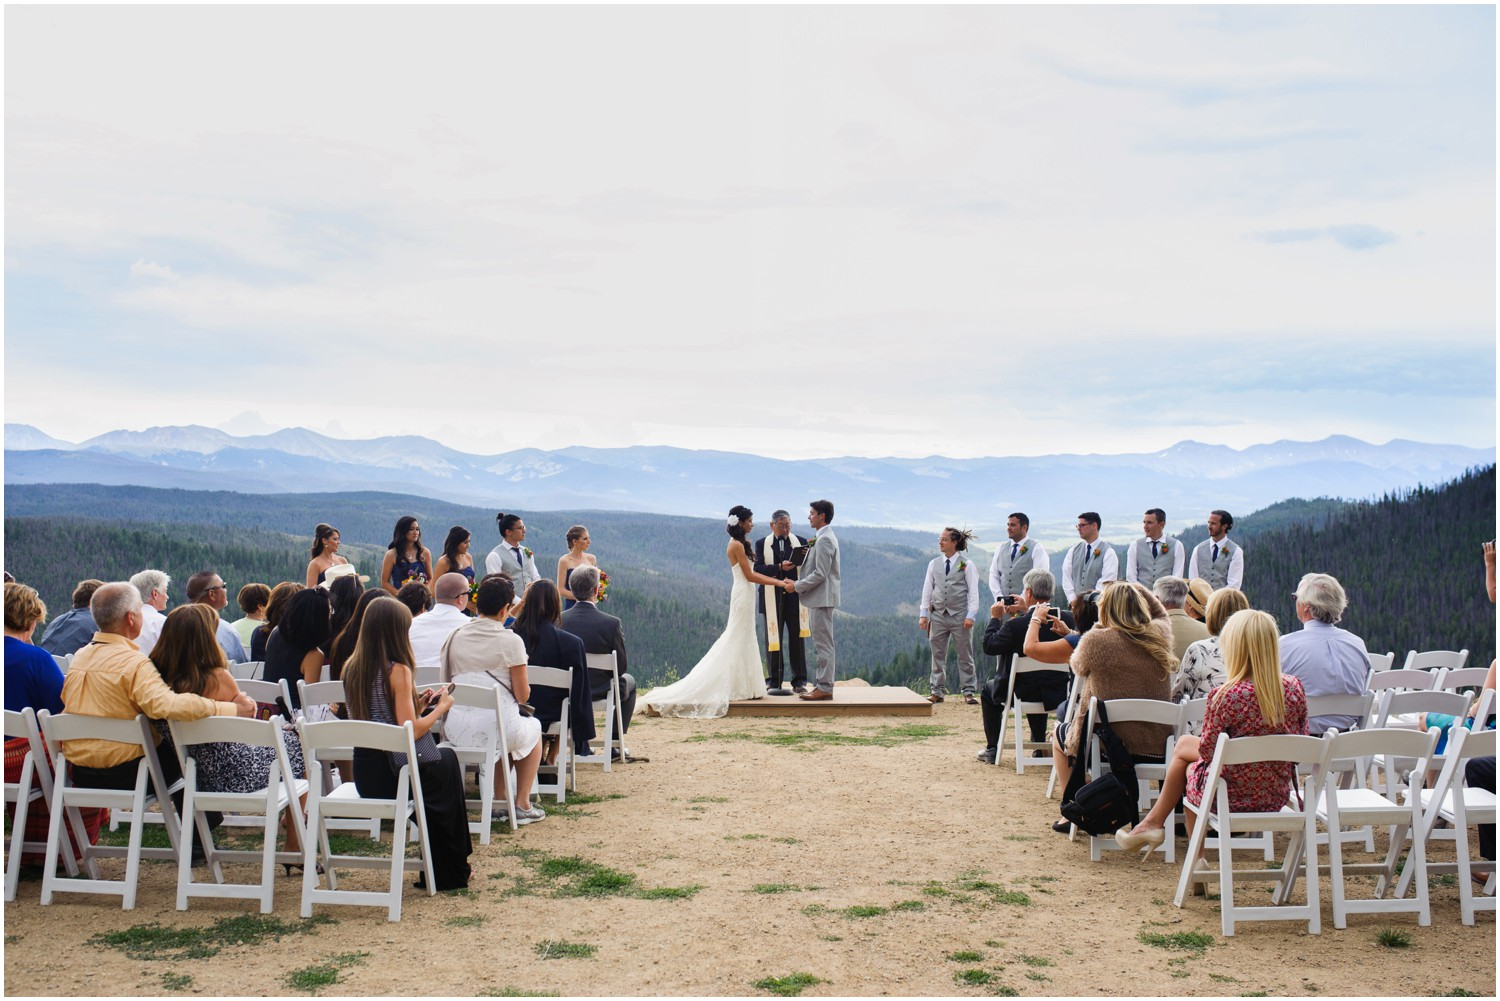 494-Granby-ranch-summer-wedding-photography-Ross.jpg